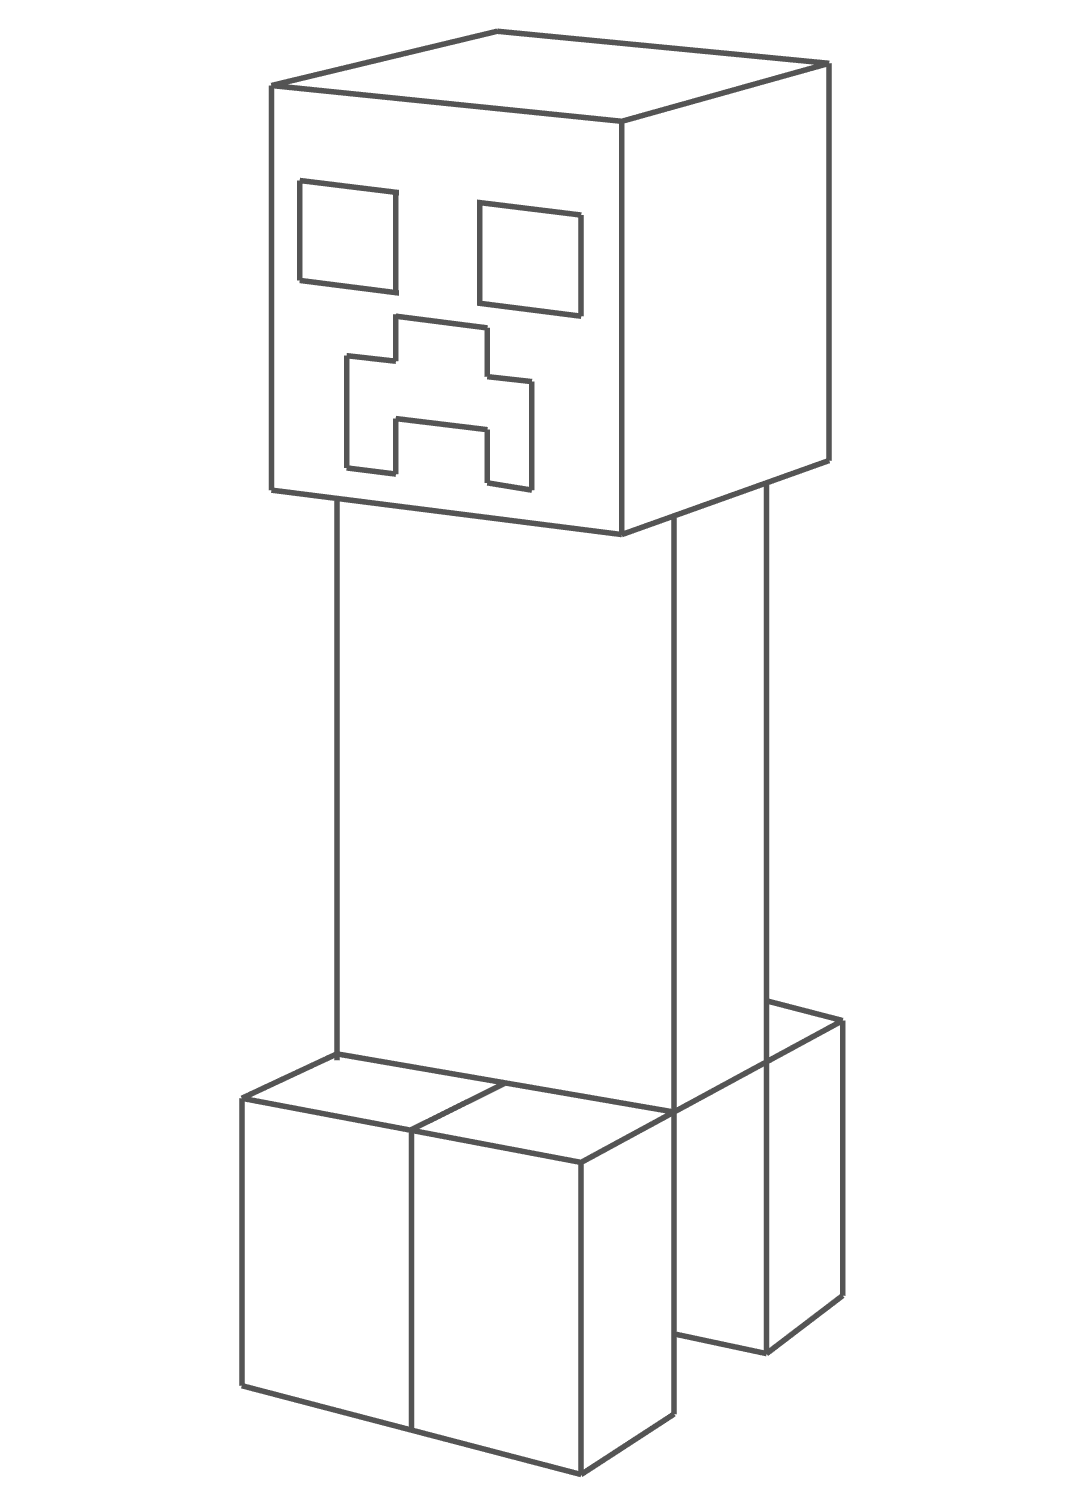 minecraft creeper coloring page 4